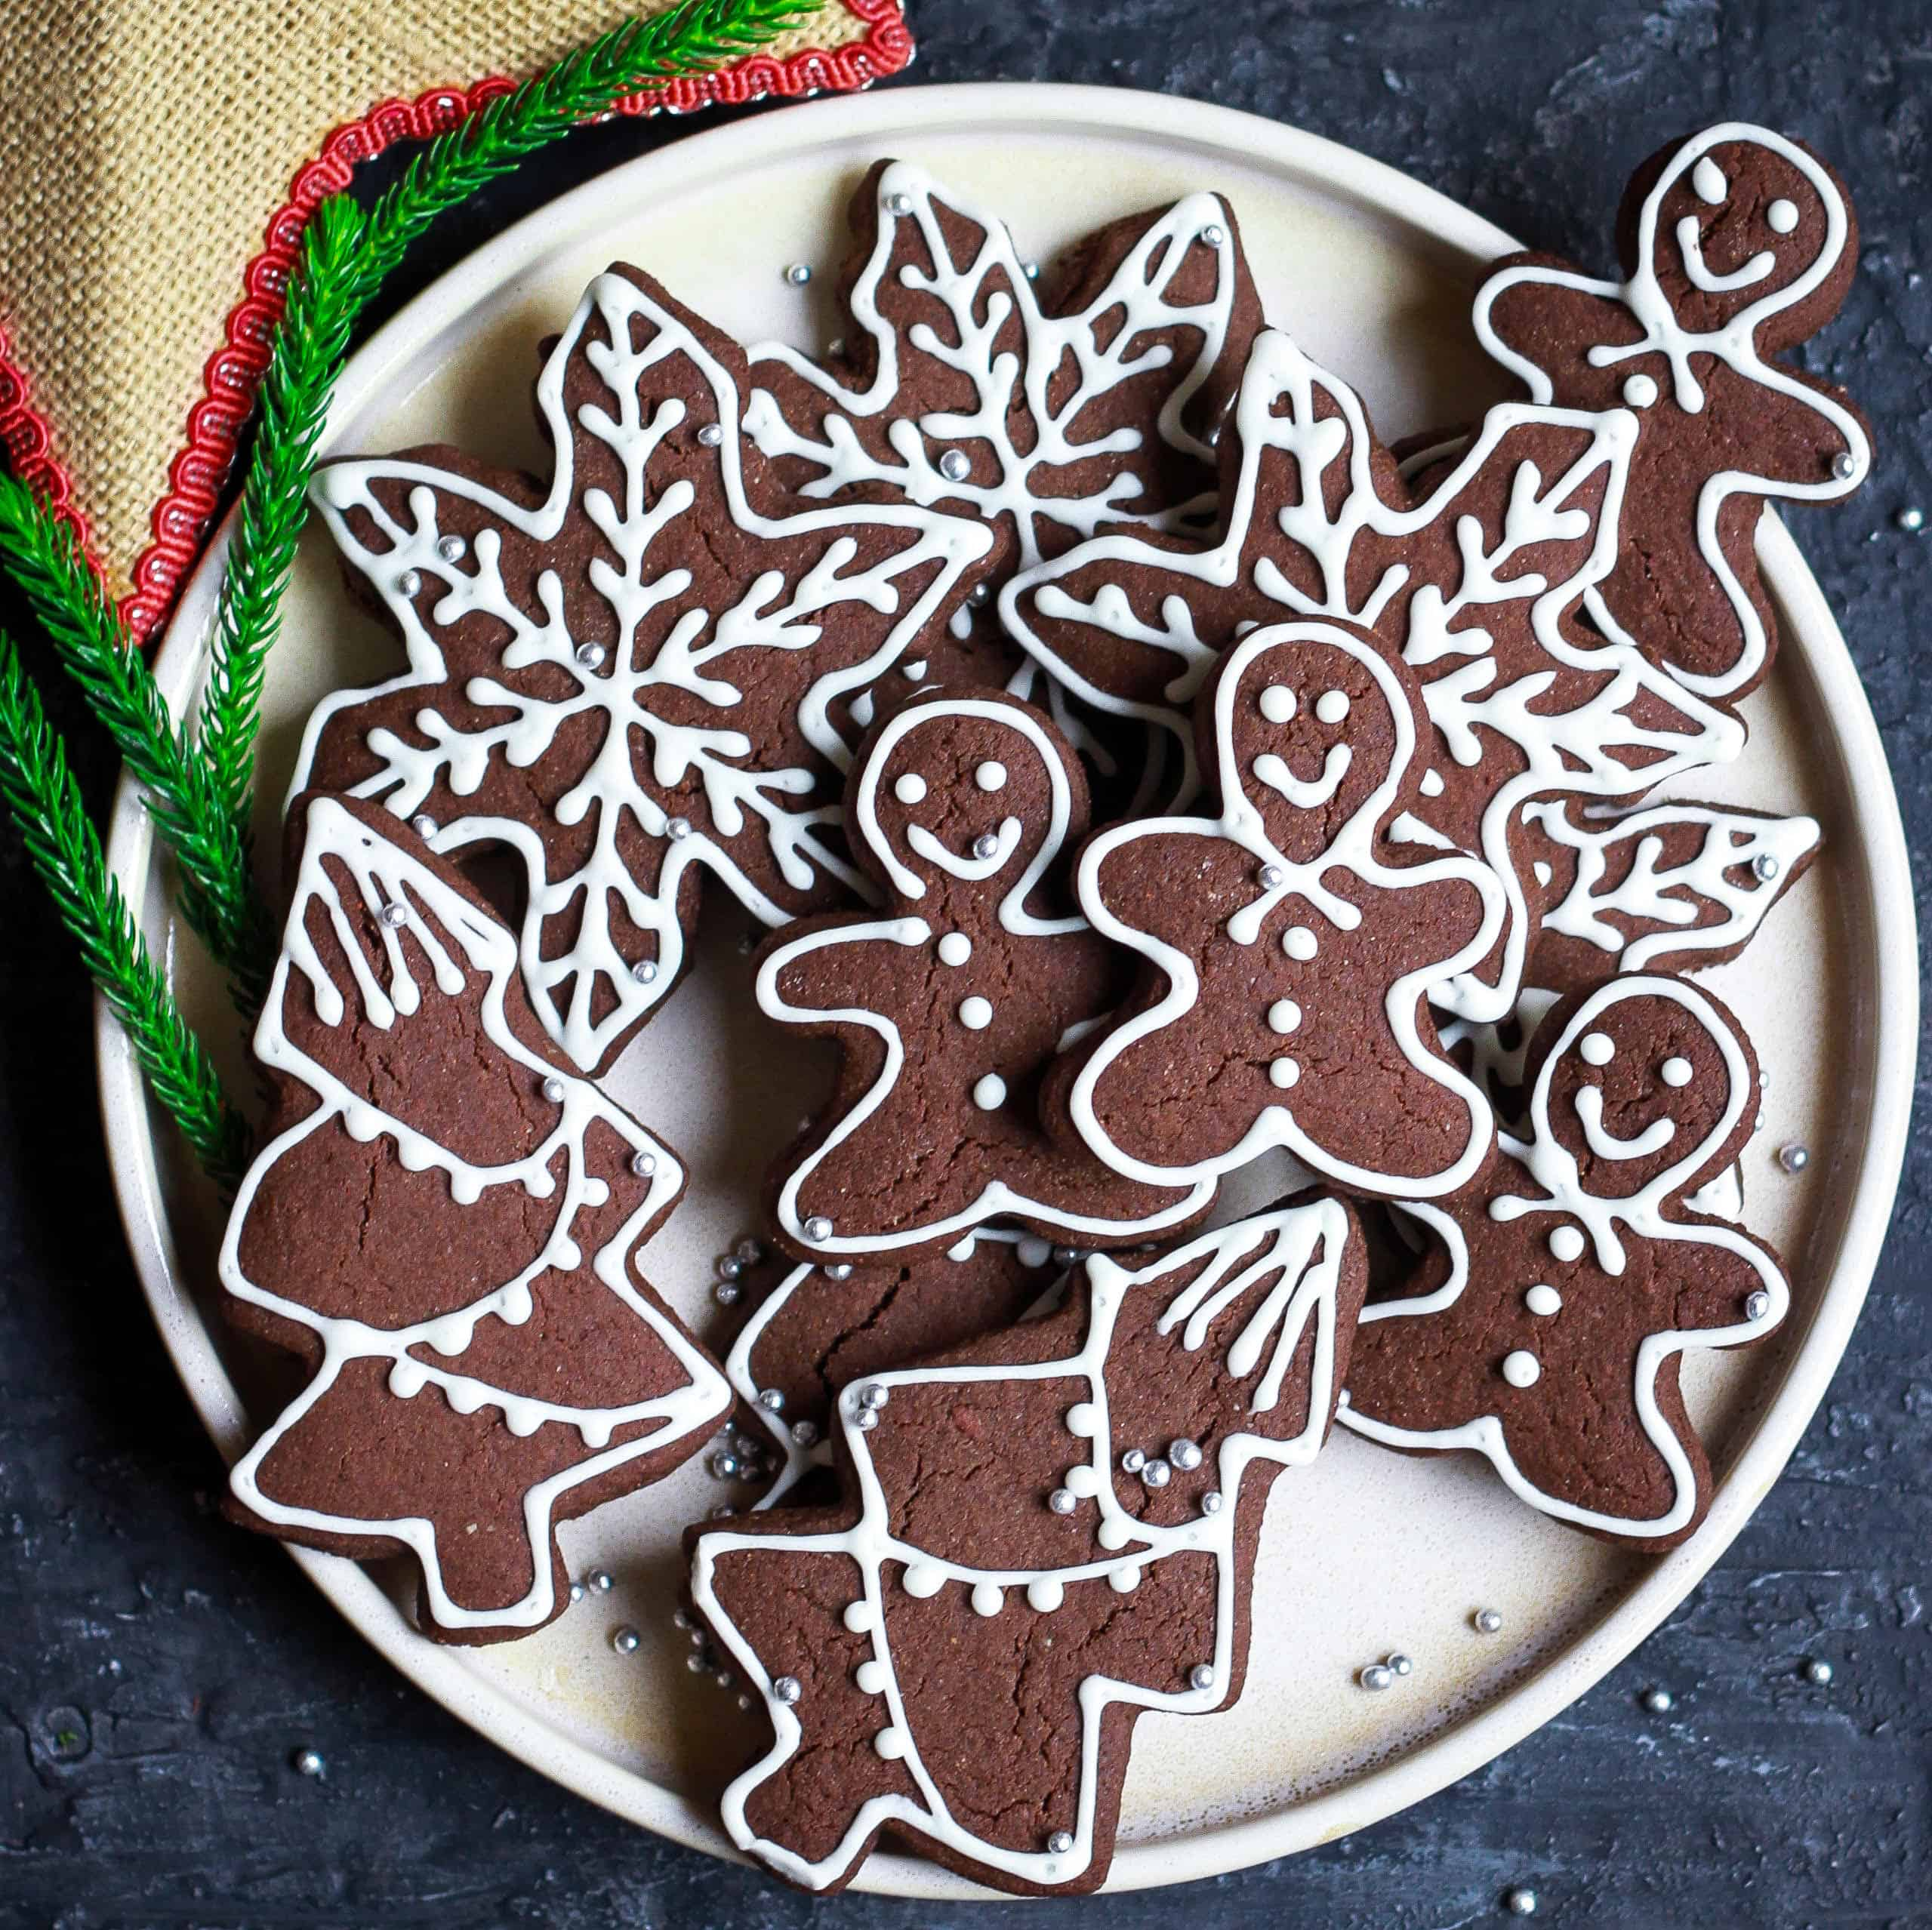 Chocolate Gingerbread Cookies glutenfree eggless recipe Holiday baking